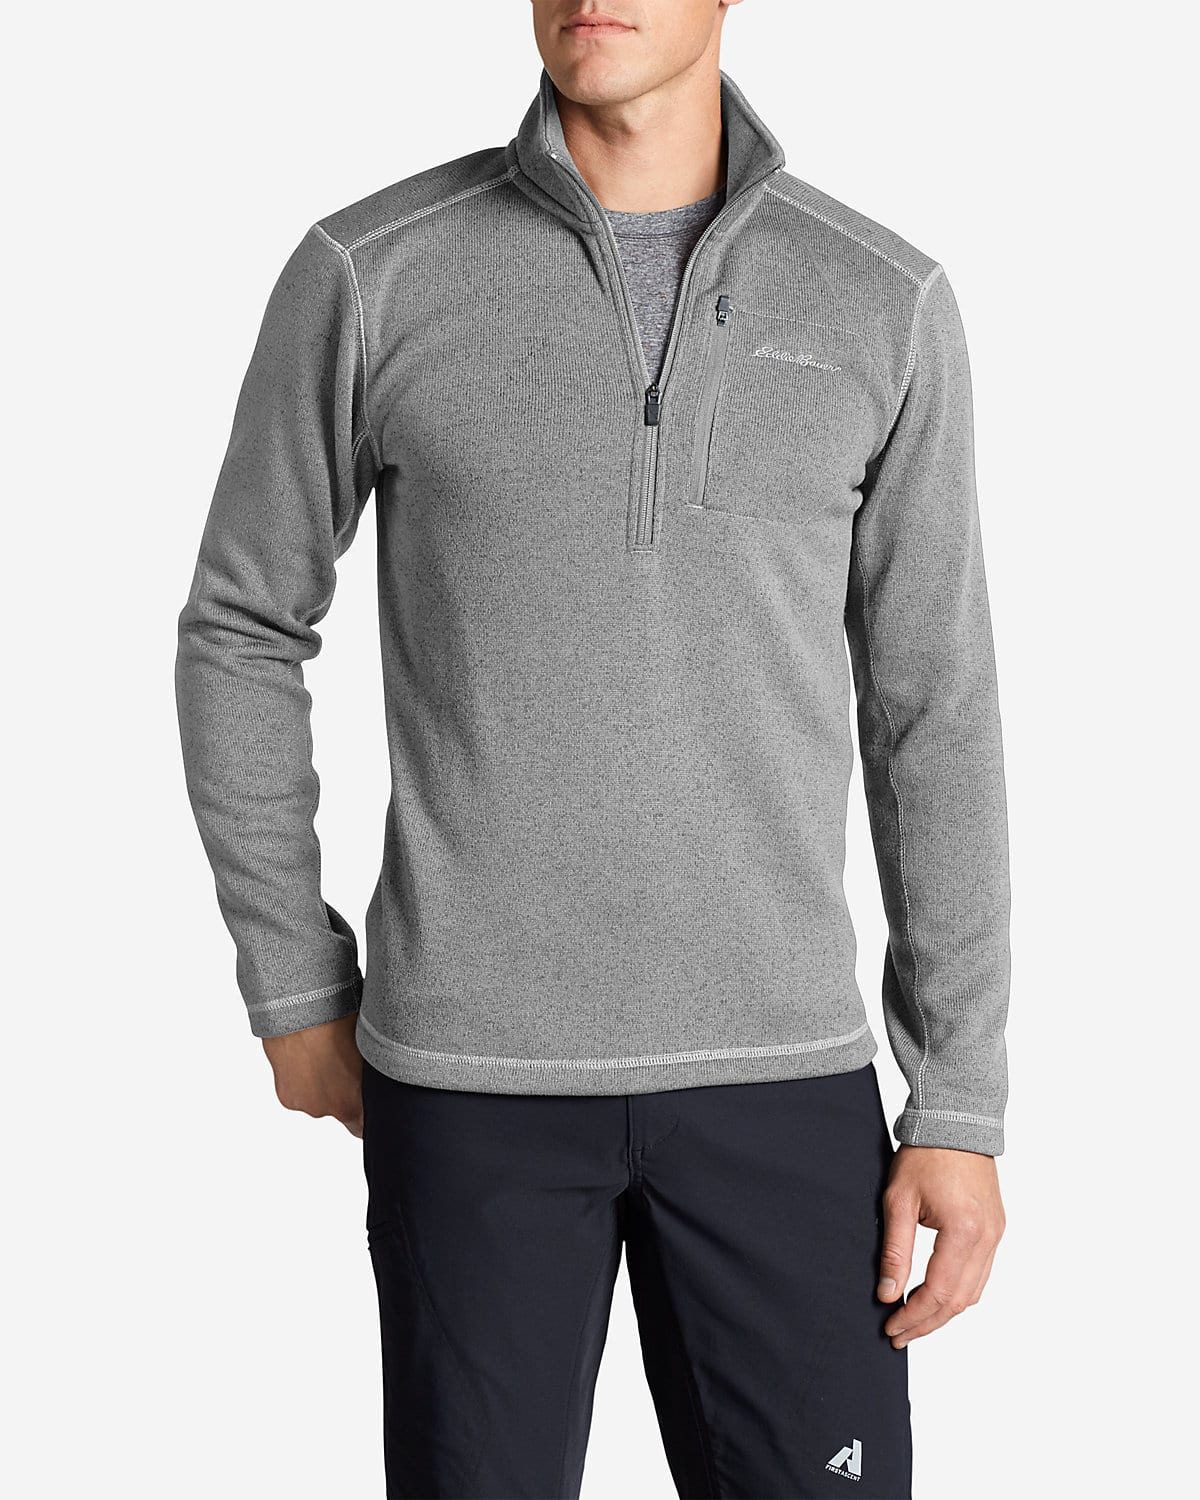 eddie bauer eddiebauer.com - 40% off everything (excludes clearance) - free shipping on $99+